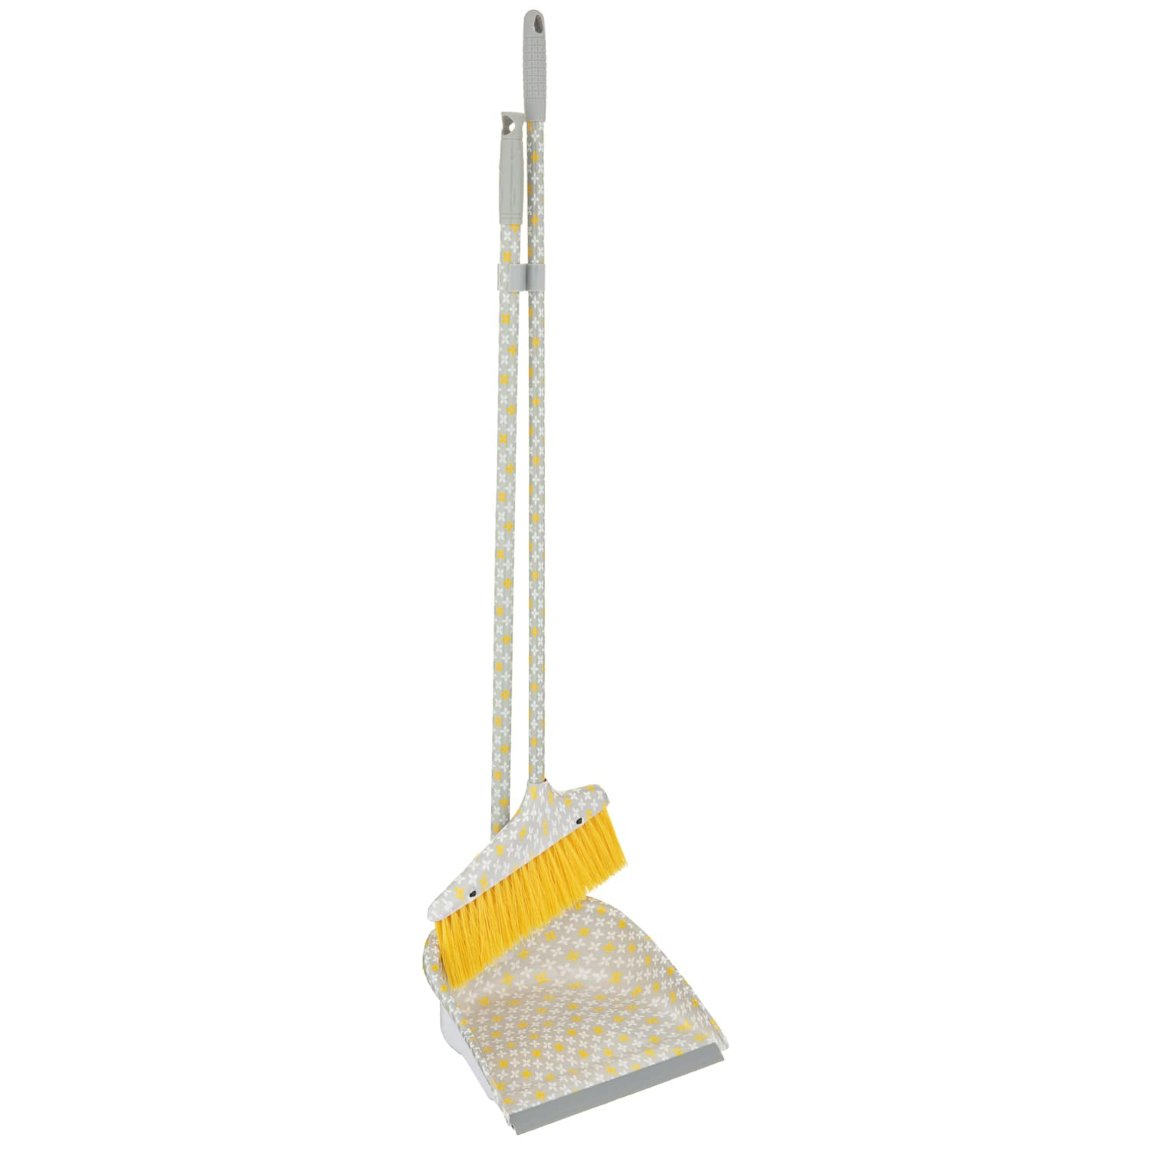 Dustpan & Brush with Printed Handle - Yellow Geo